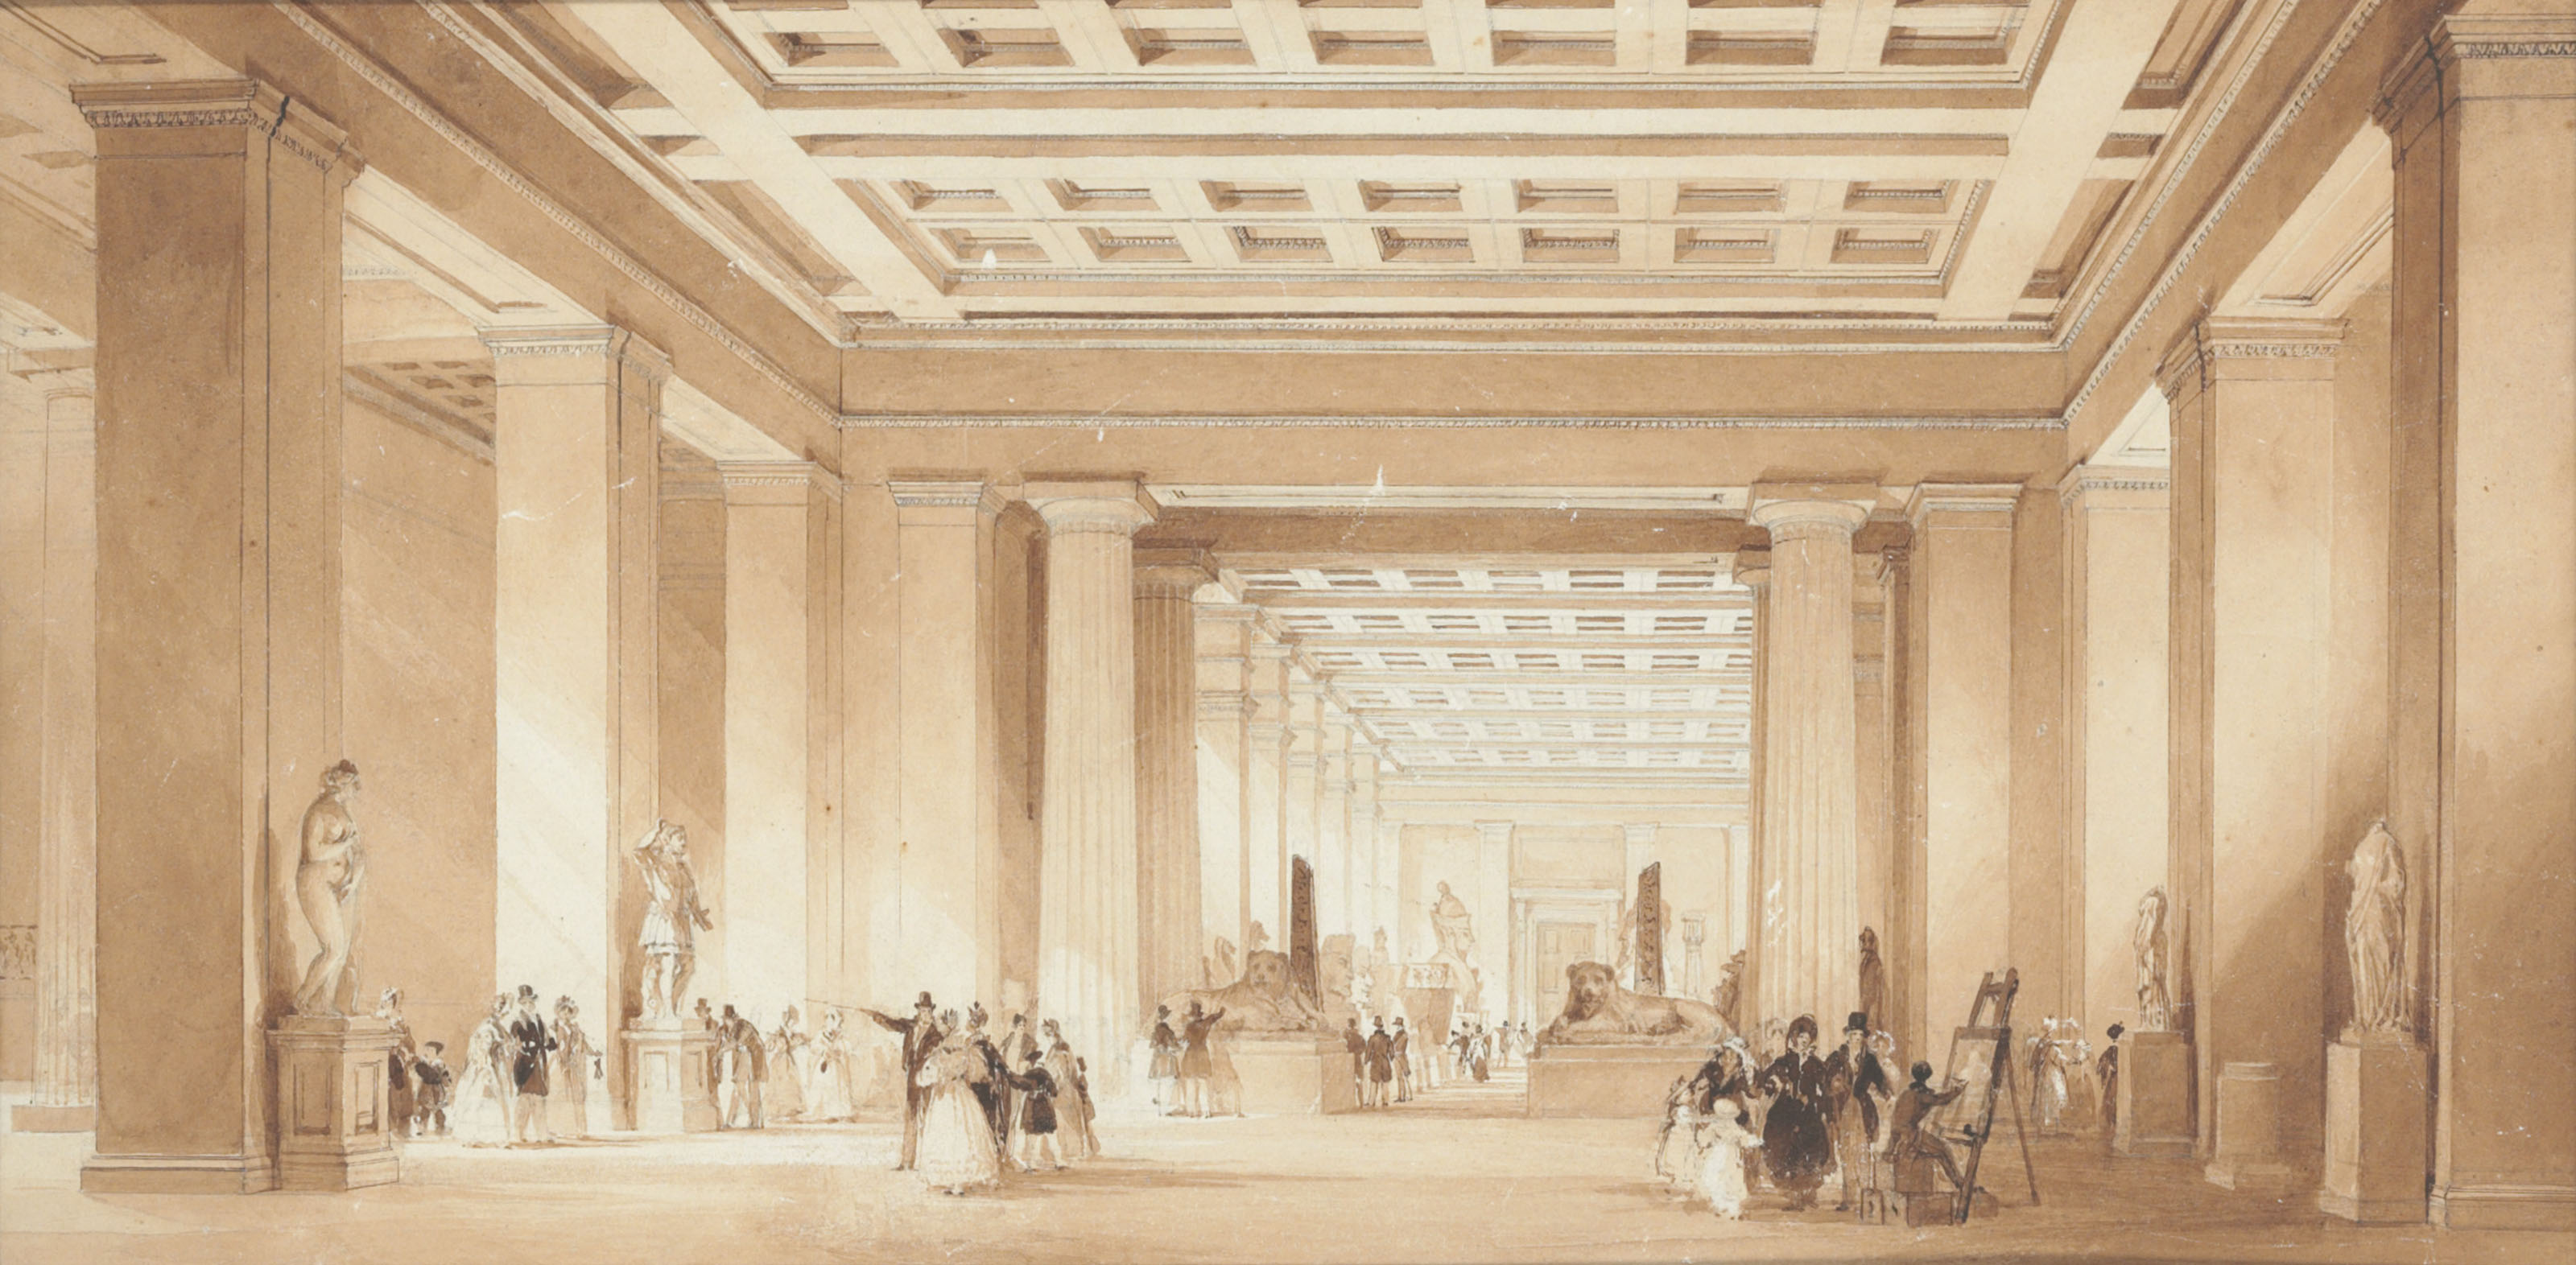 View of the Egyptian Rooms at the British Museum, London